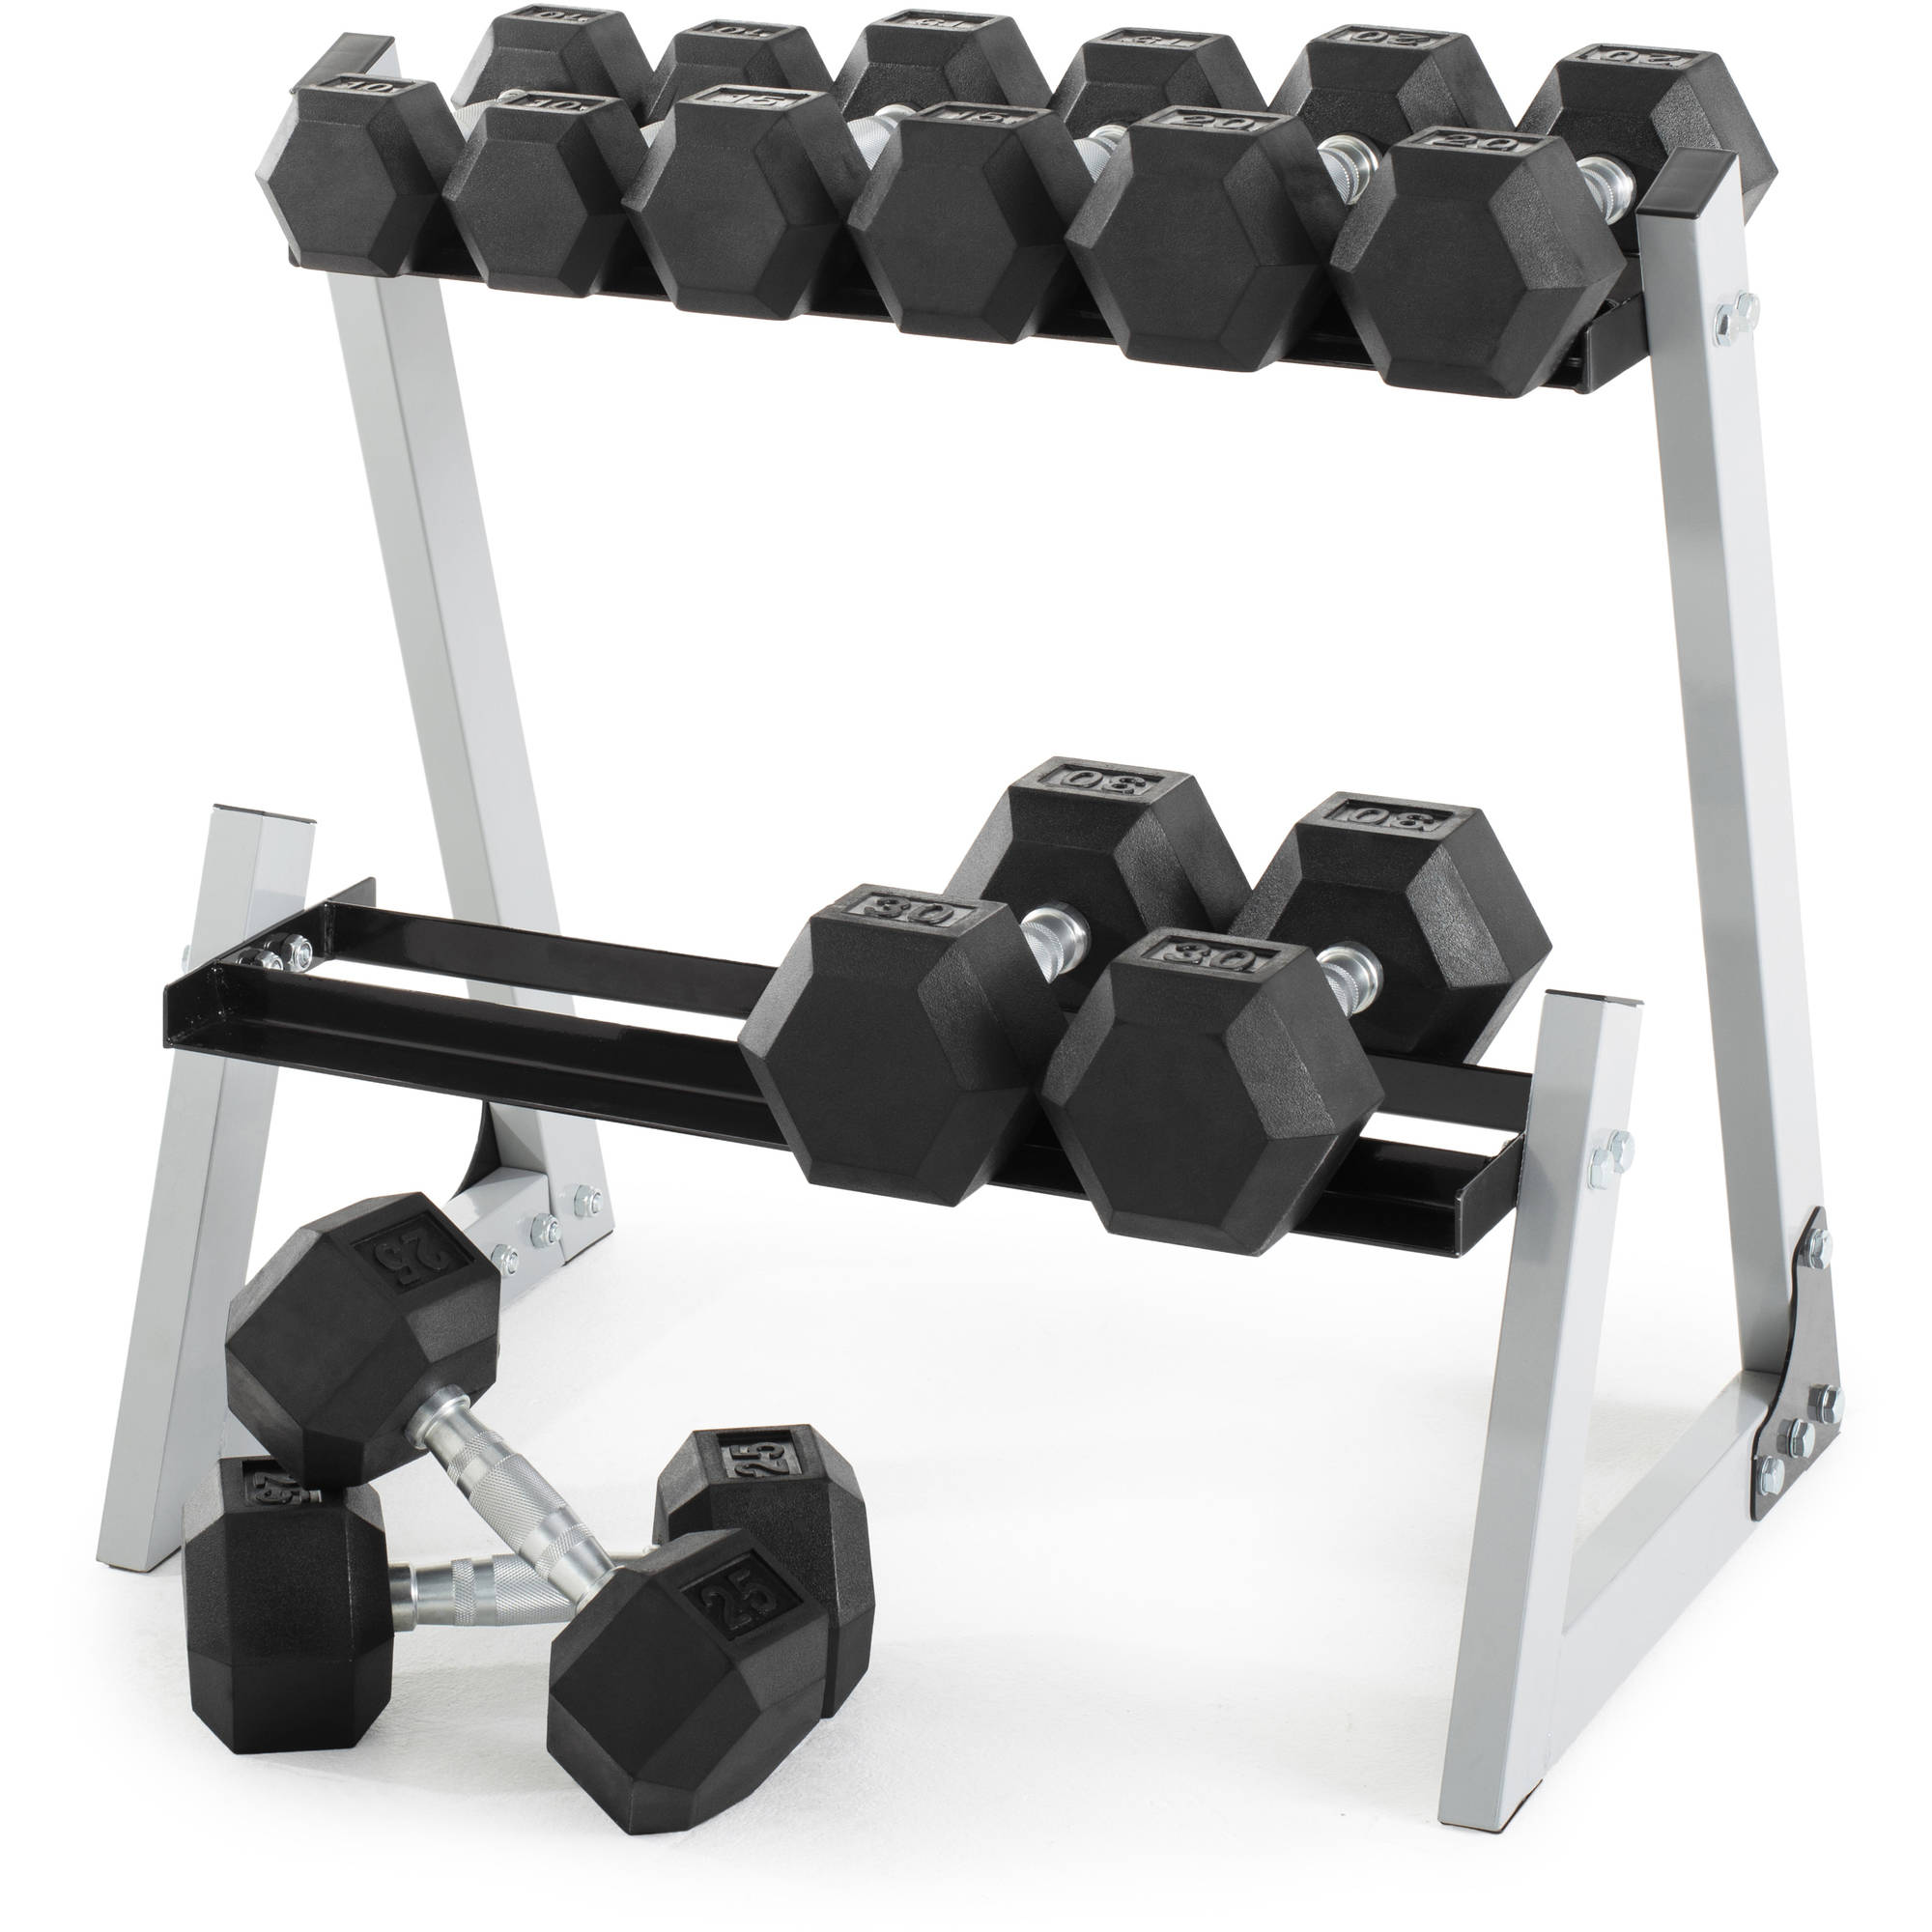 Weider 200 lb Rubber Hex Dumbbell Weight Set, 10-30 lb with Weight Rack